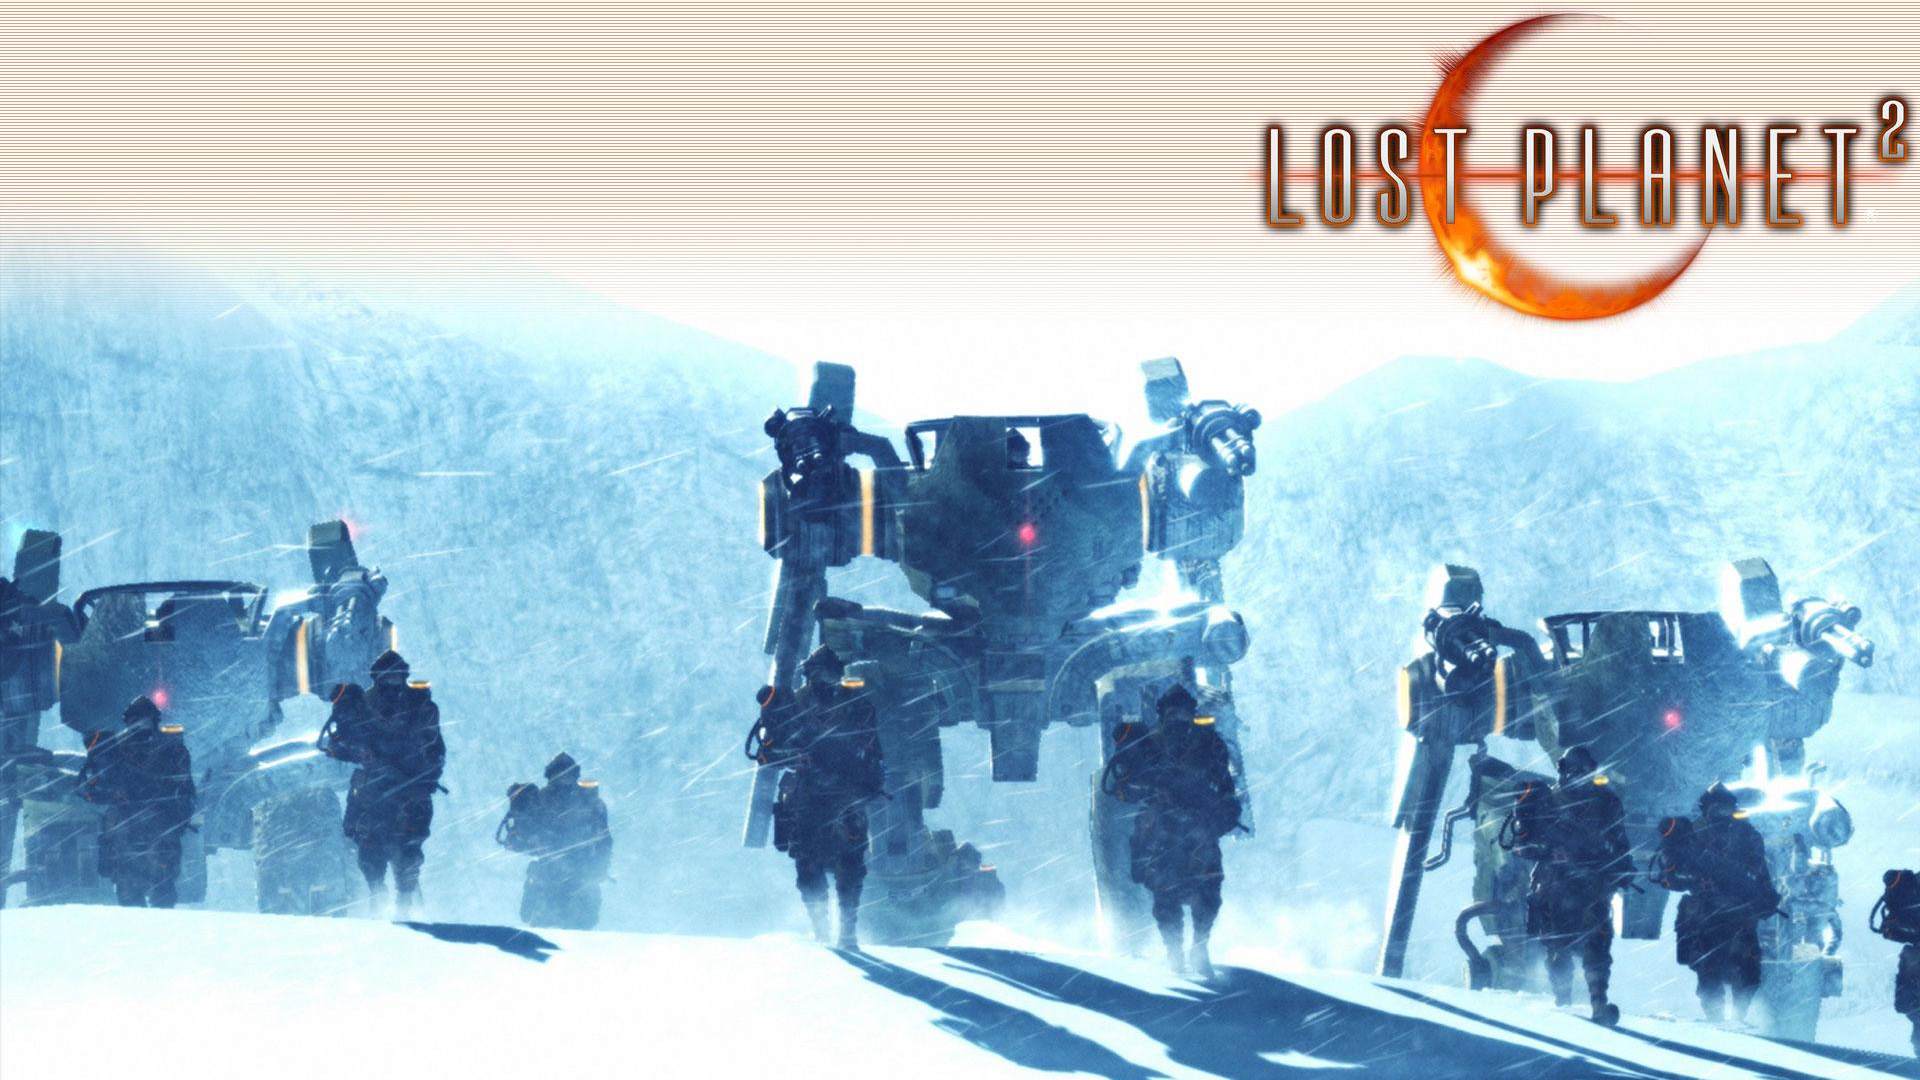 Lost Planet 2 wallpaper 4